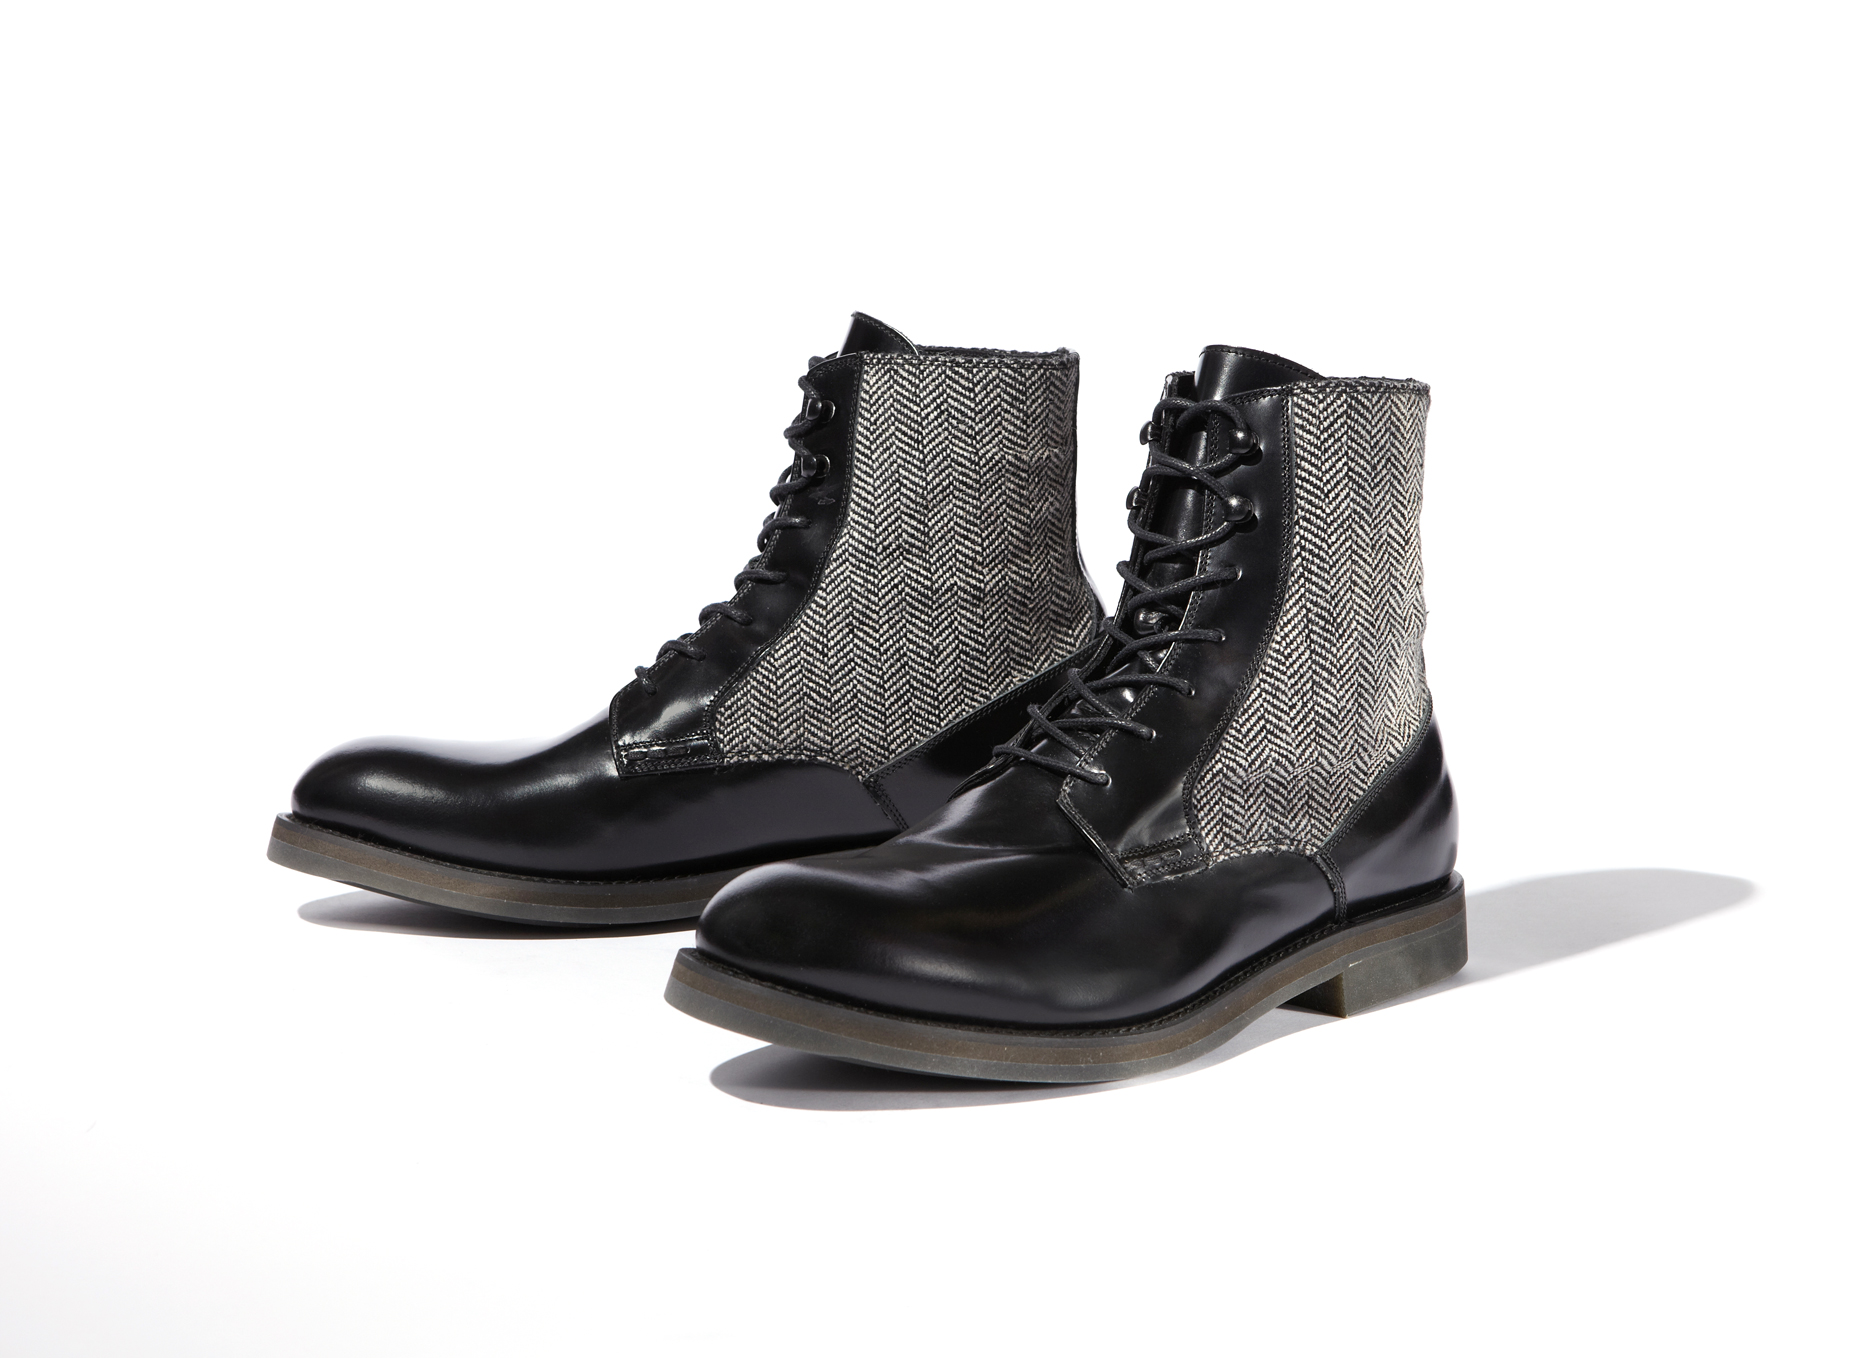 131111_Inc-Mens-Boot-Military-Inspired-10136951_1021_A1